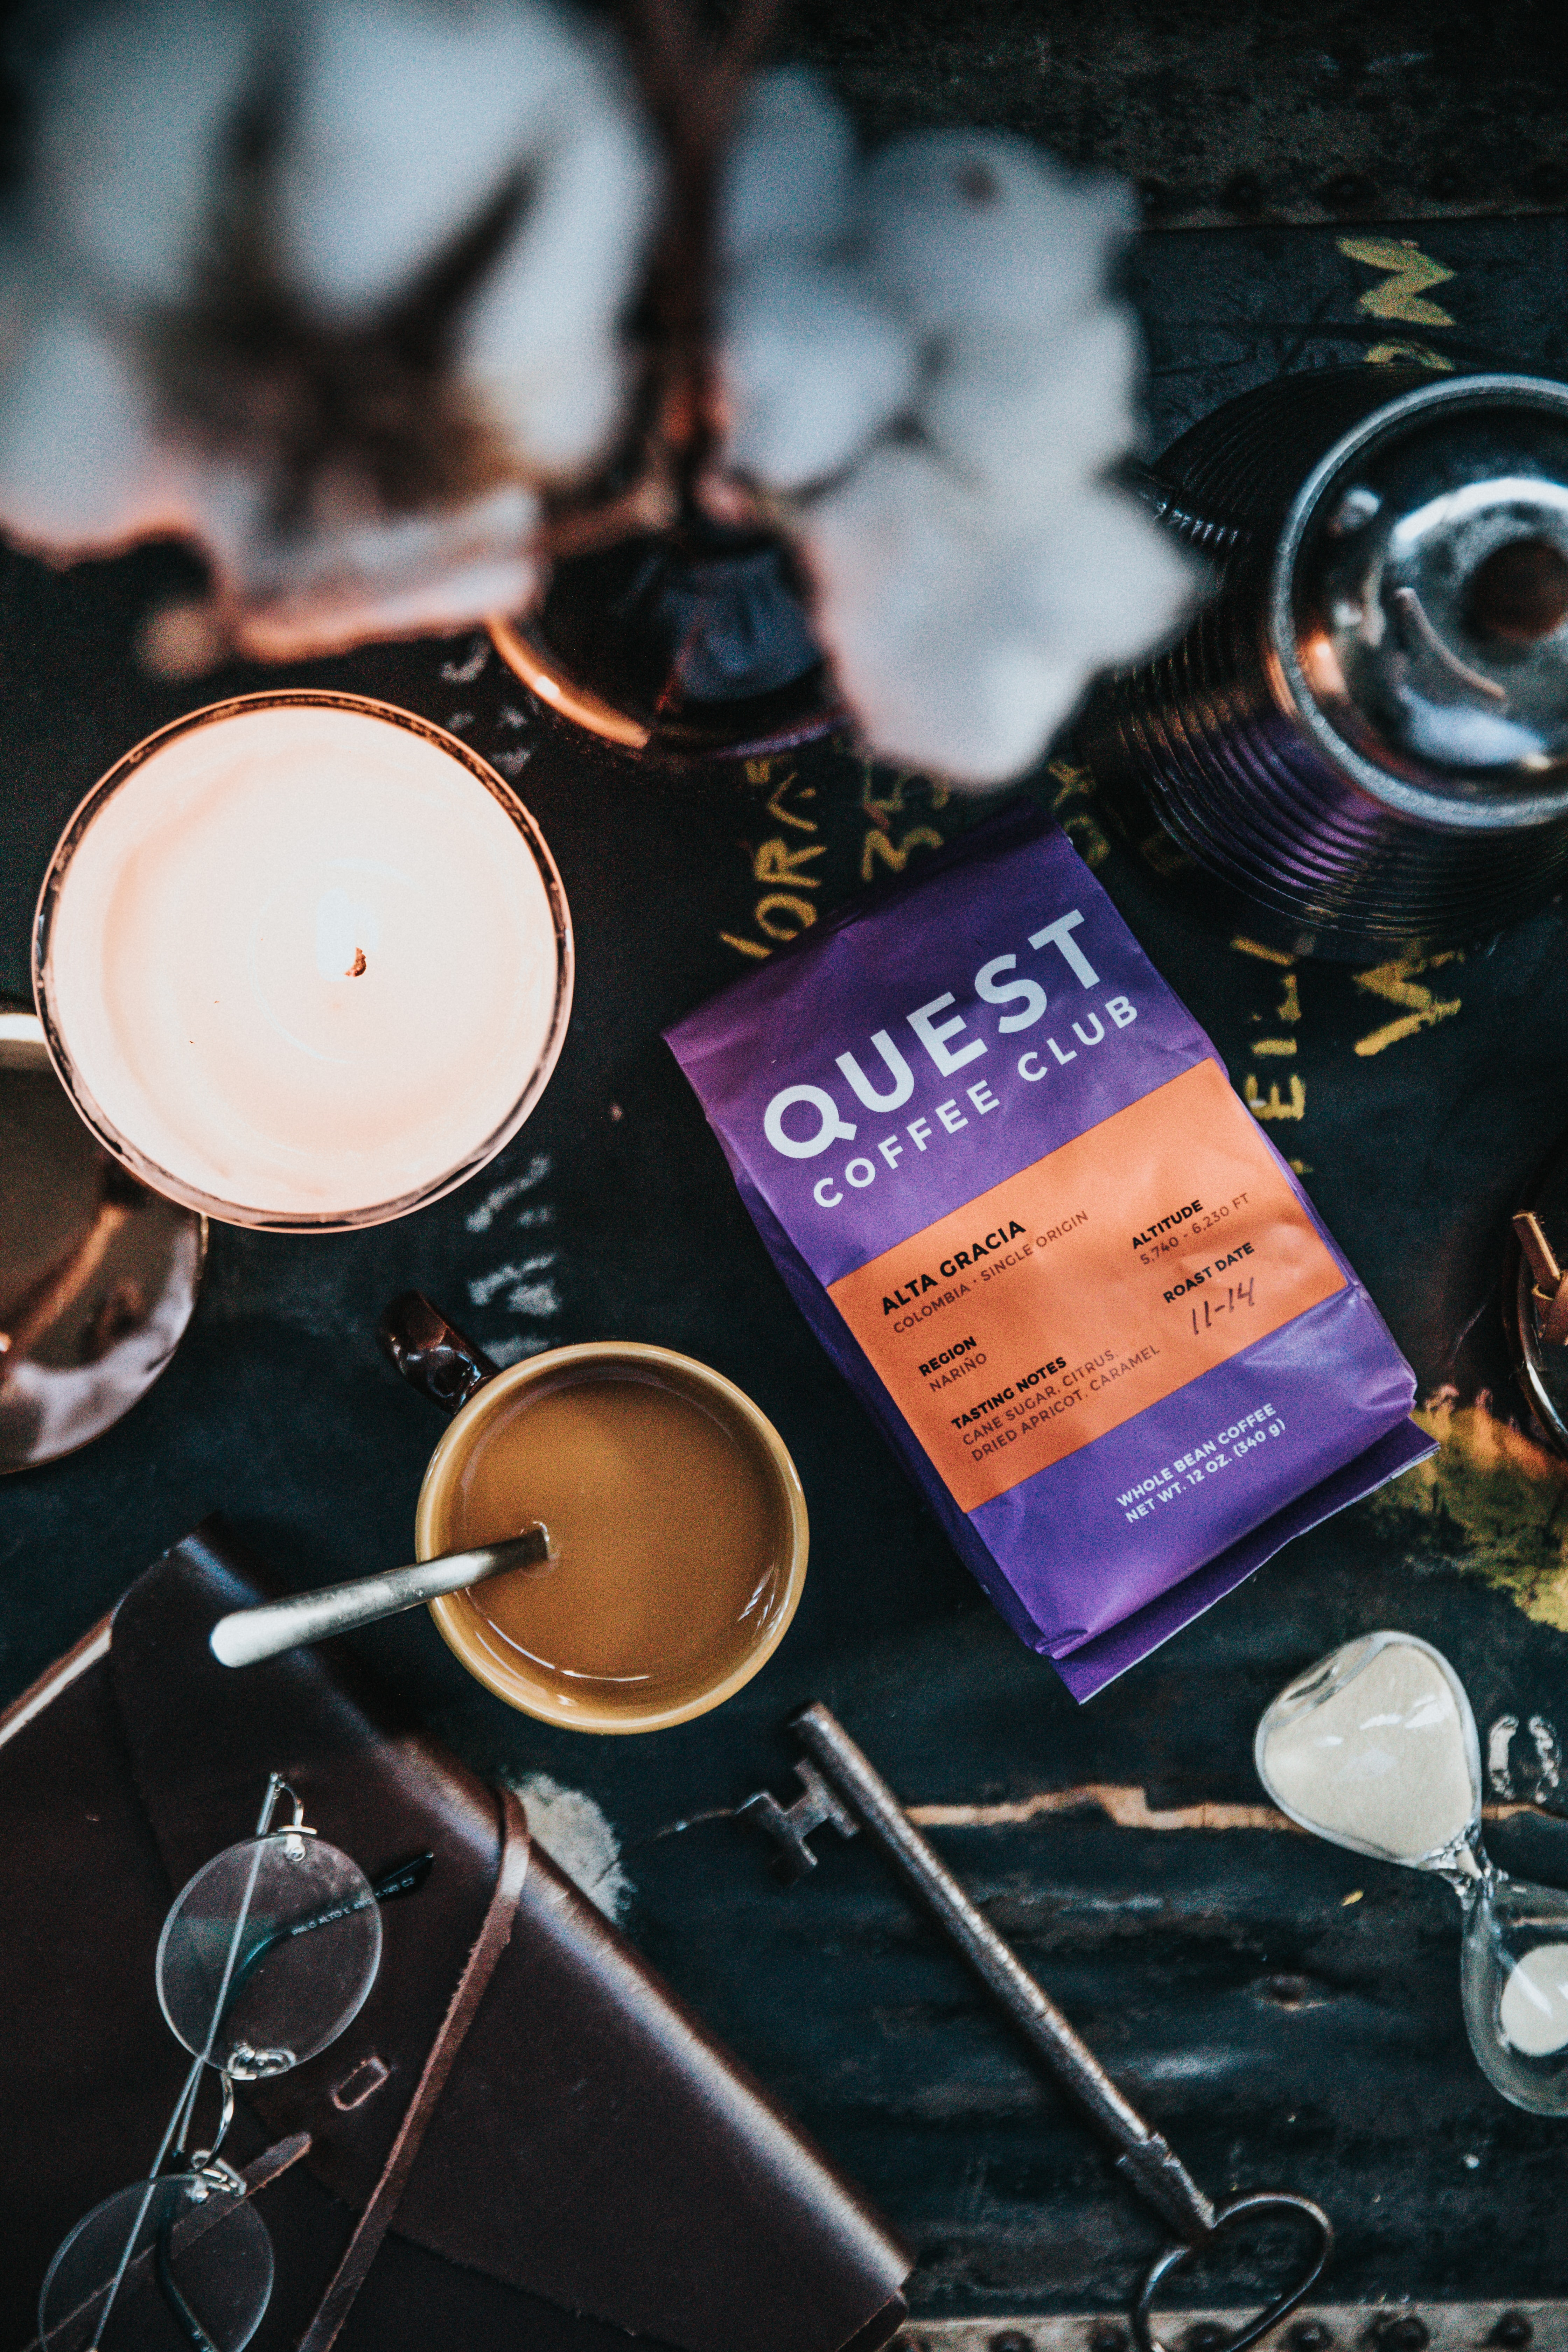 blue quest coffee club pack near mug